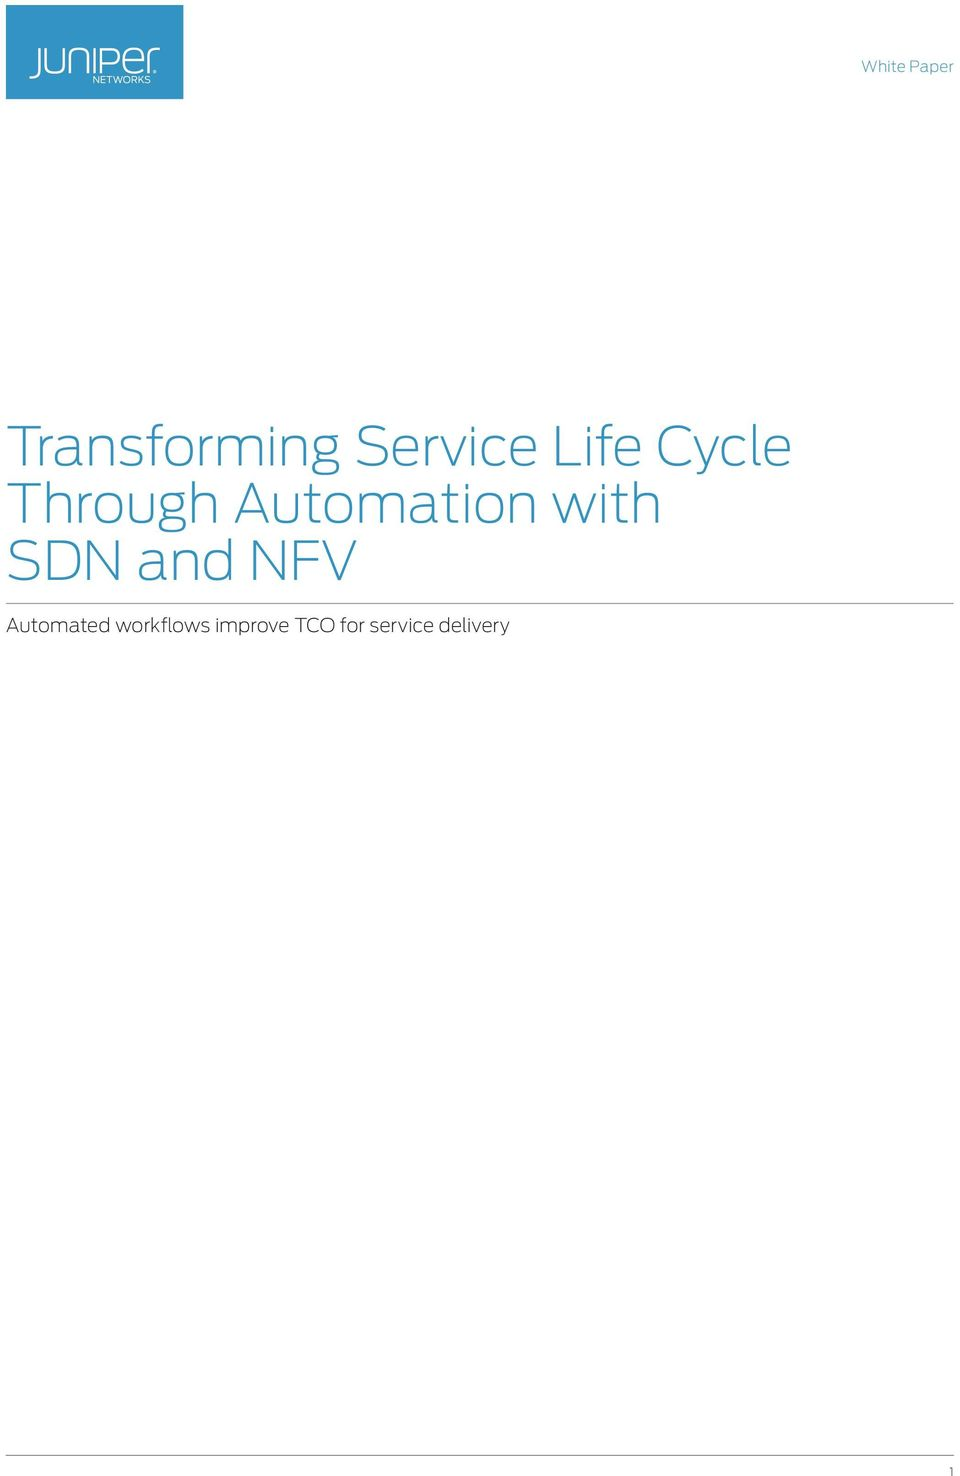 SDN and NFV Automated